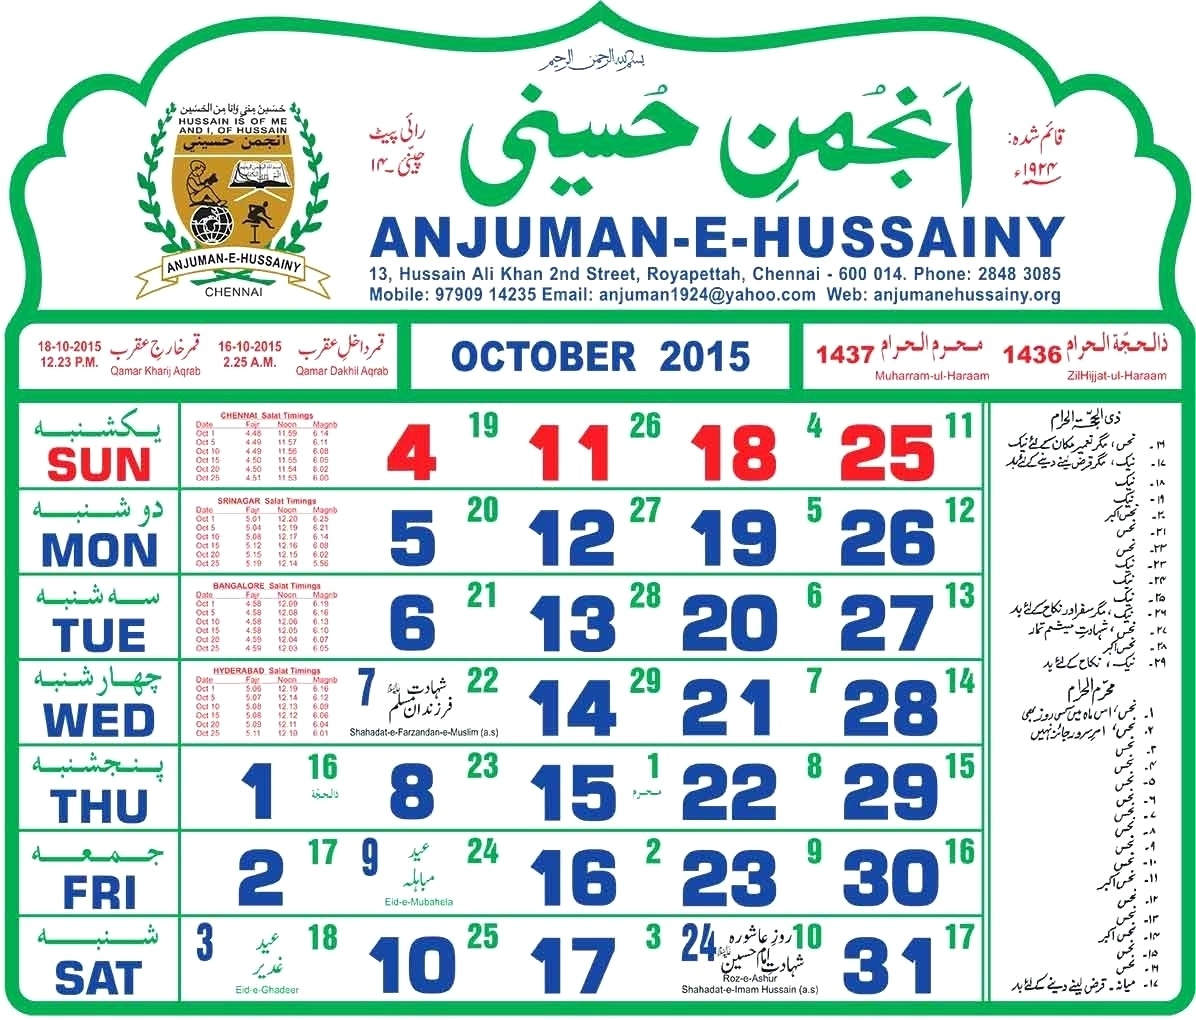 Calendar Hijri Date Today Saudi October 2015 Islamic Intended For with regard to Urdu Calendar Of Year 2000 Month December